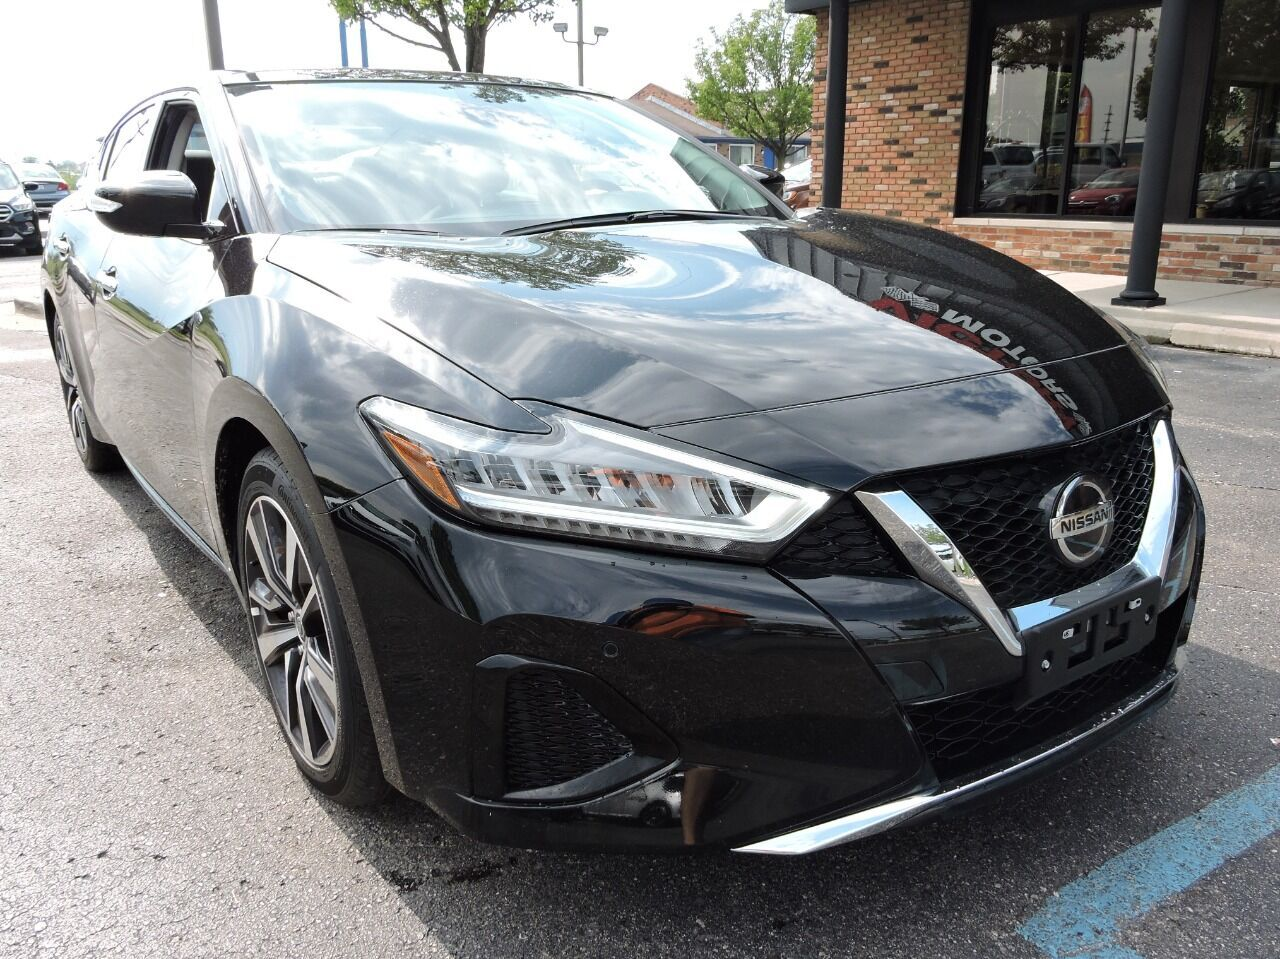 2020 Nissan Maxima 3.5 SL 4dr Sedan Chesterfield MI